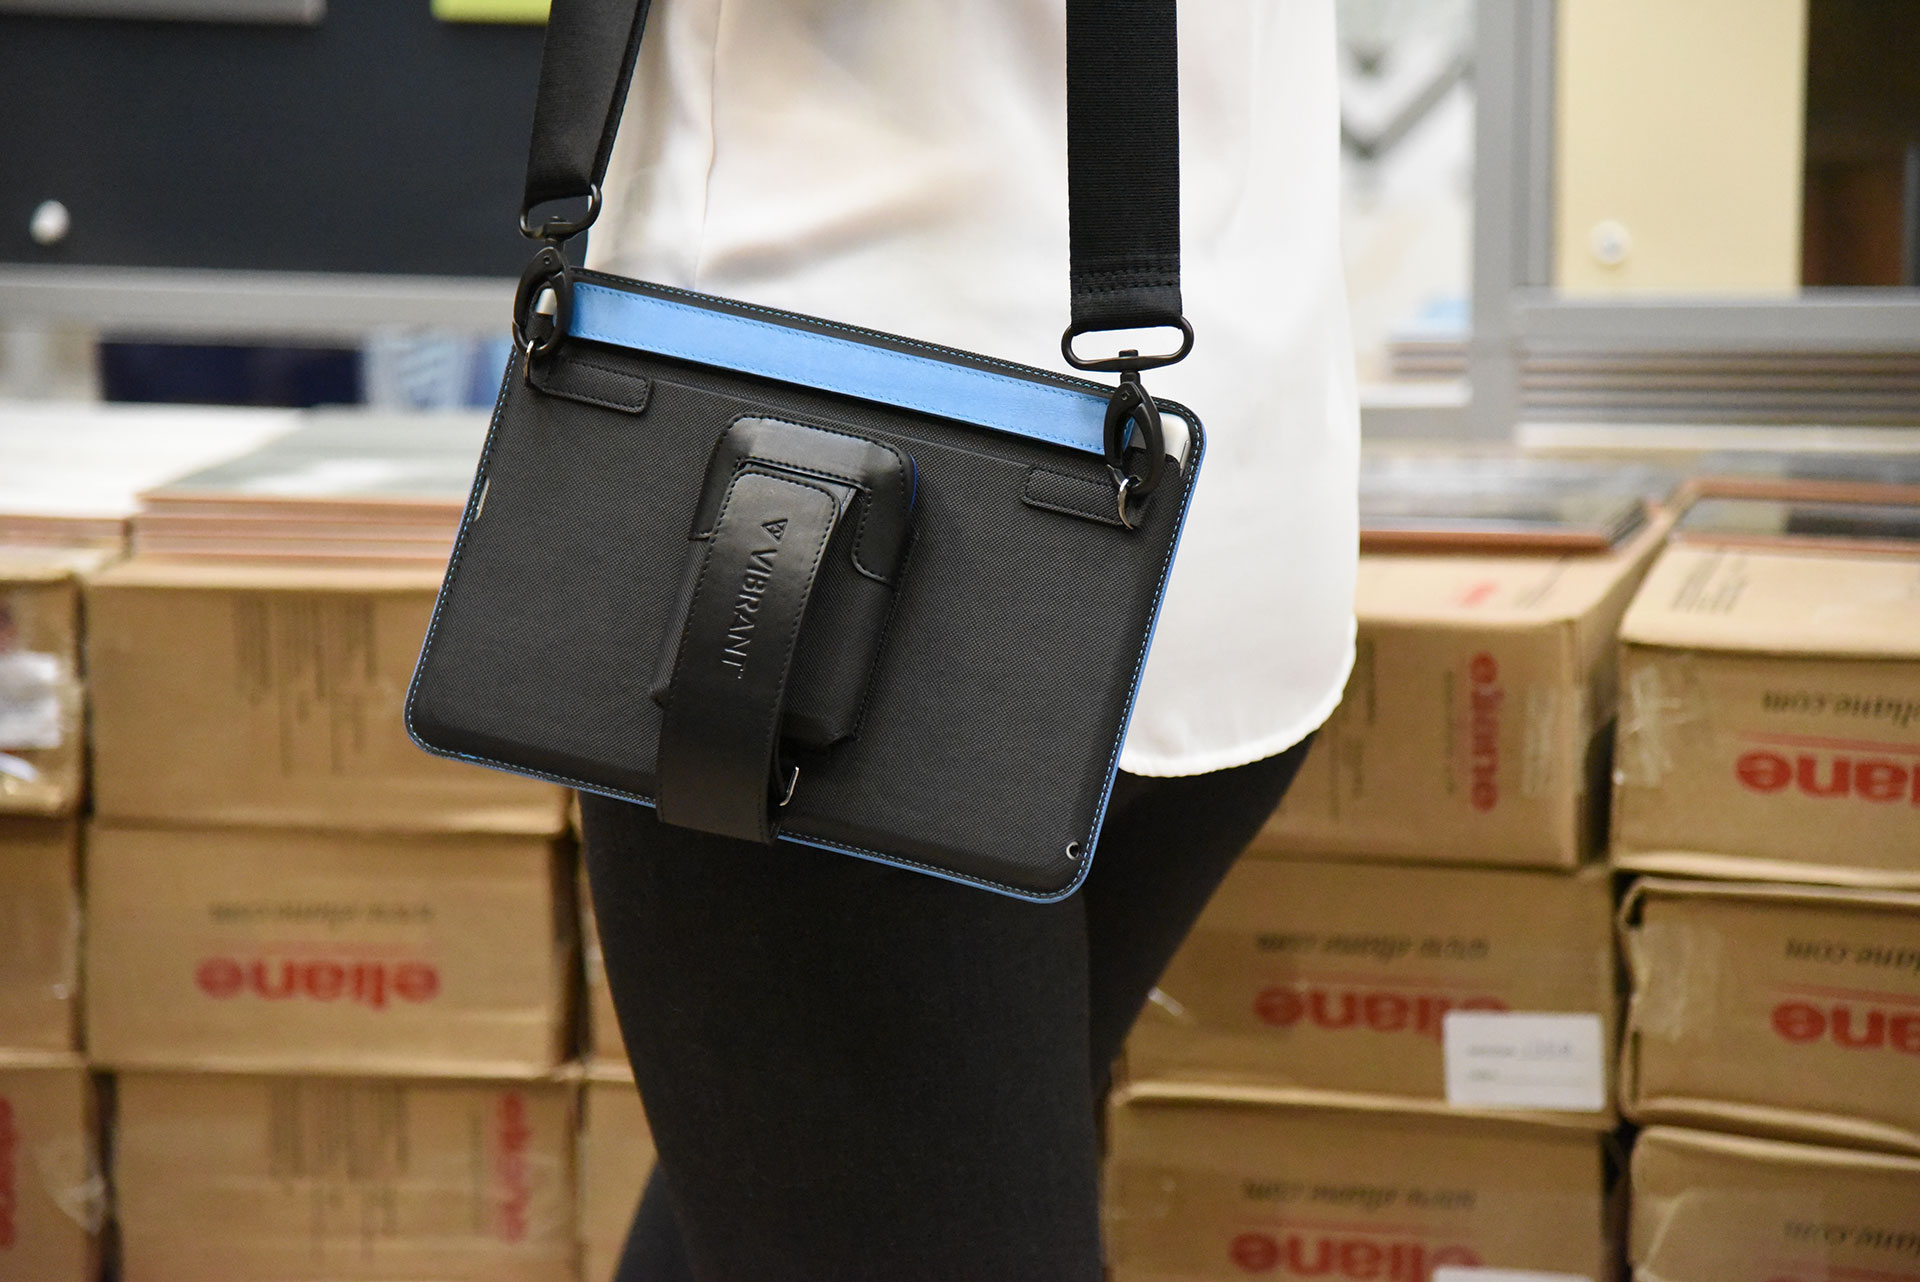 Vibrant-vtab-tablet-and-ped-case-being-worn.jpg